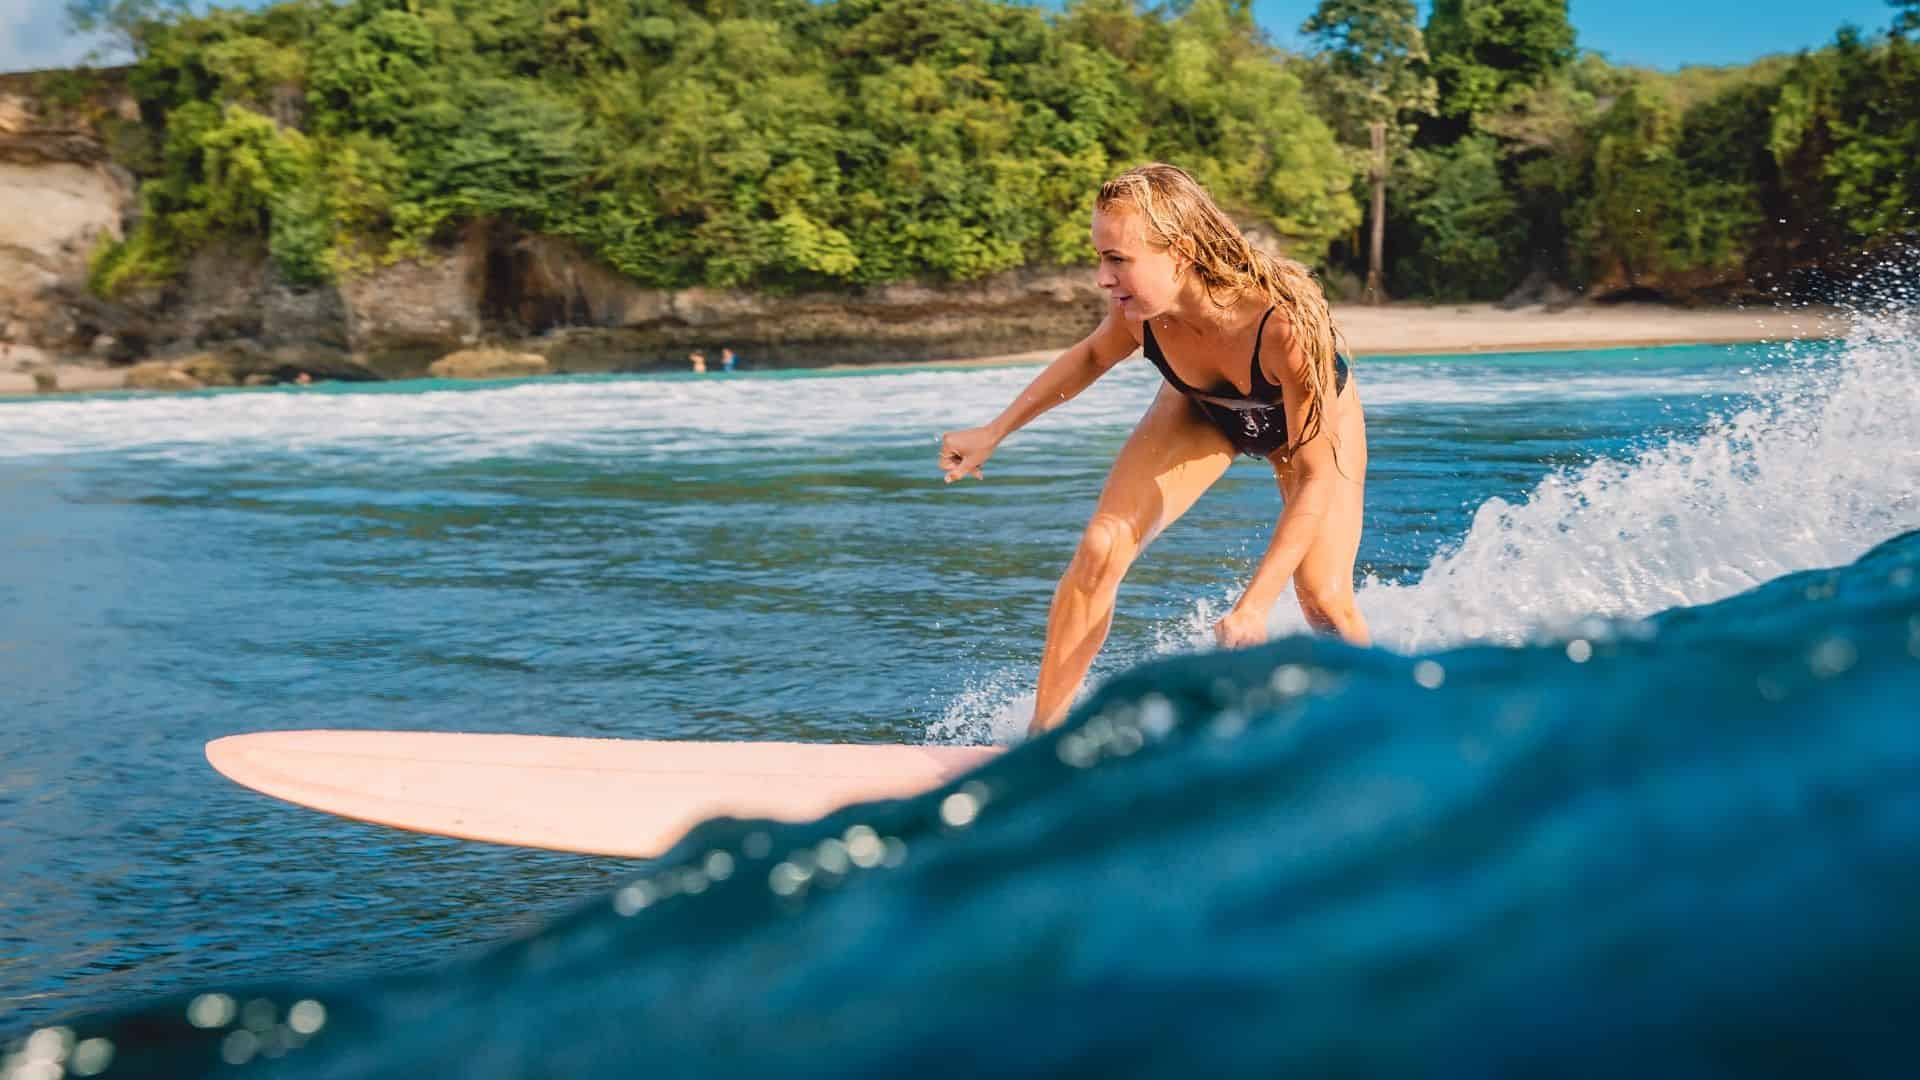 Getting in Shape and Other Reasons to Try Surfing